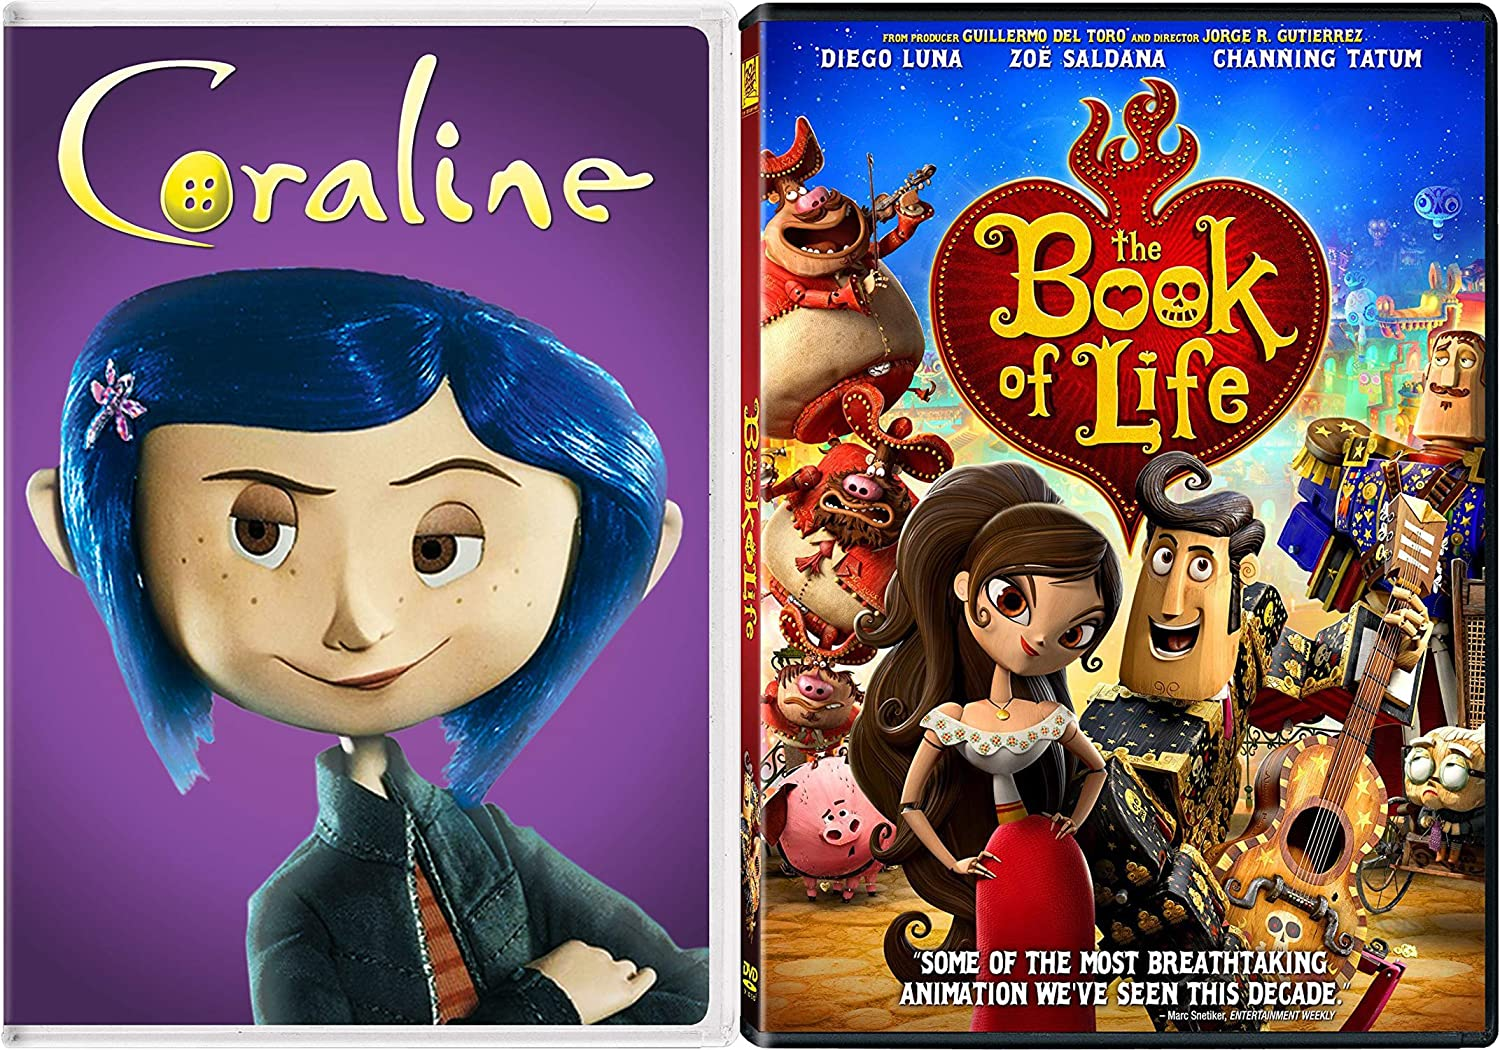 Amazon Com Button Animated Fun With Henry Selik S Coraline Jorge R Gutierrez S The Book Of Life 2 Dvd Double Feature Cool Movie Bundle Movies Tv